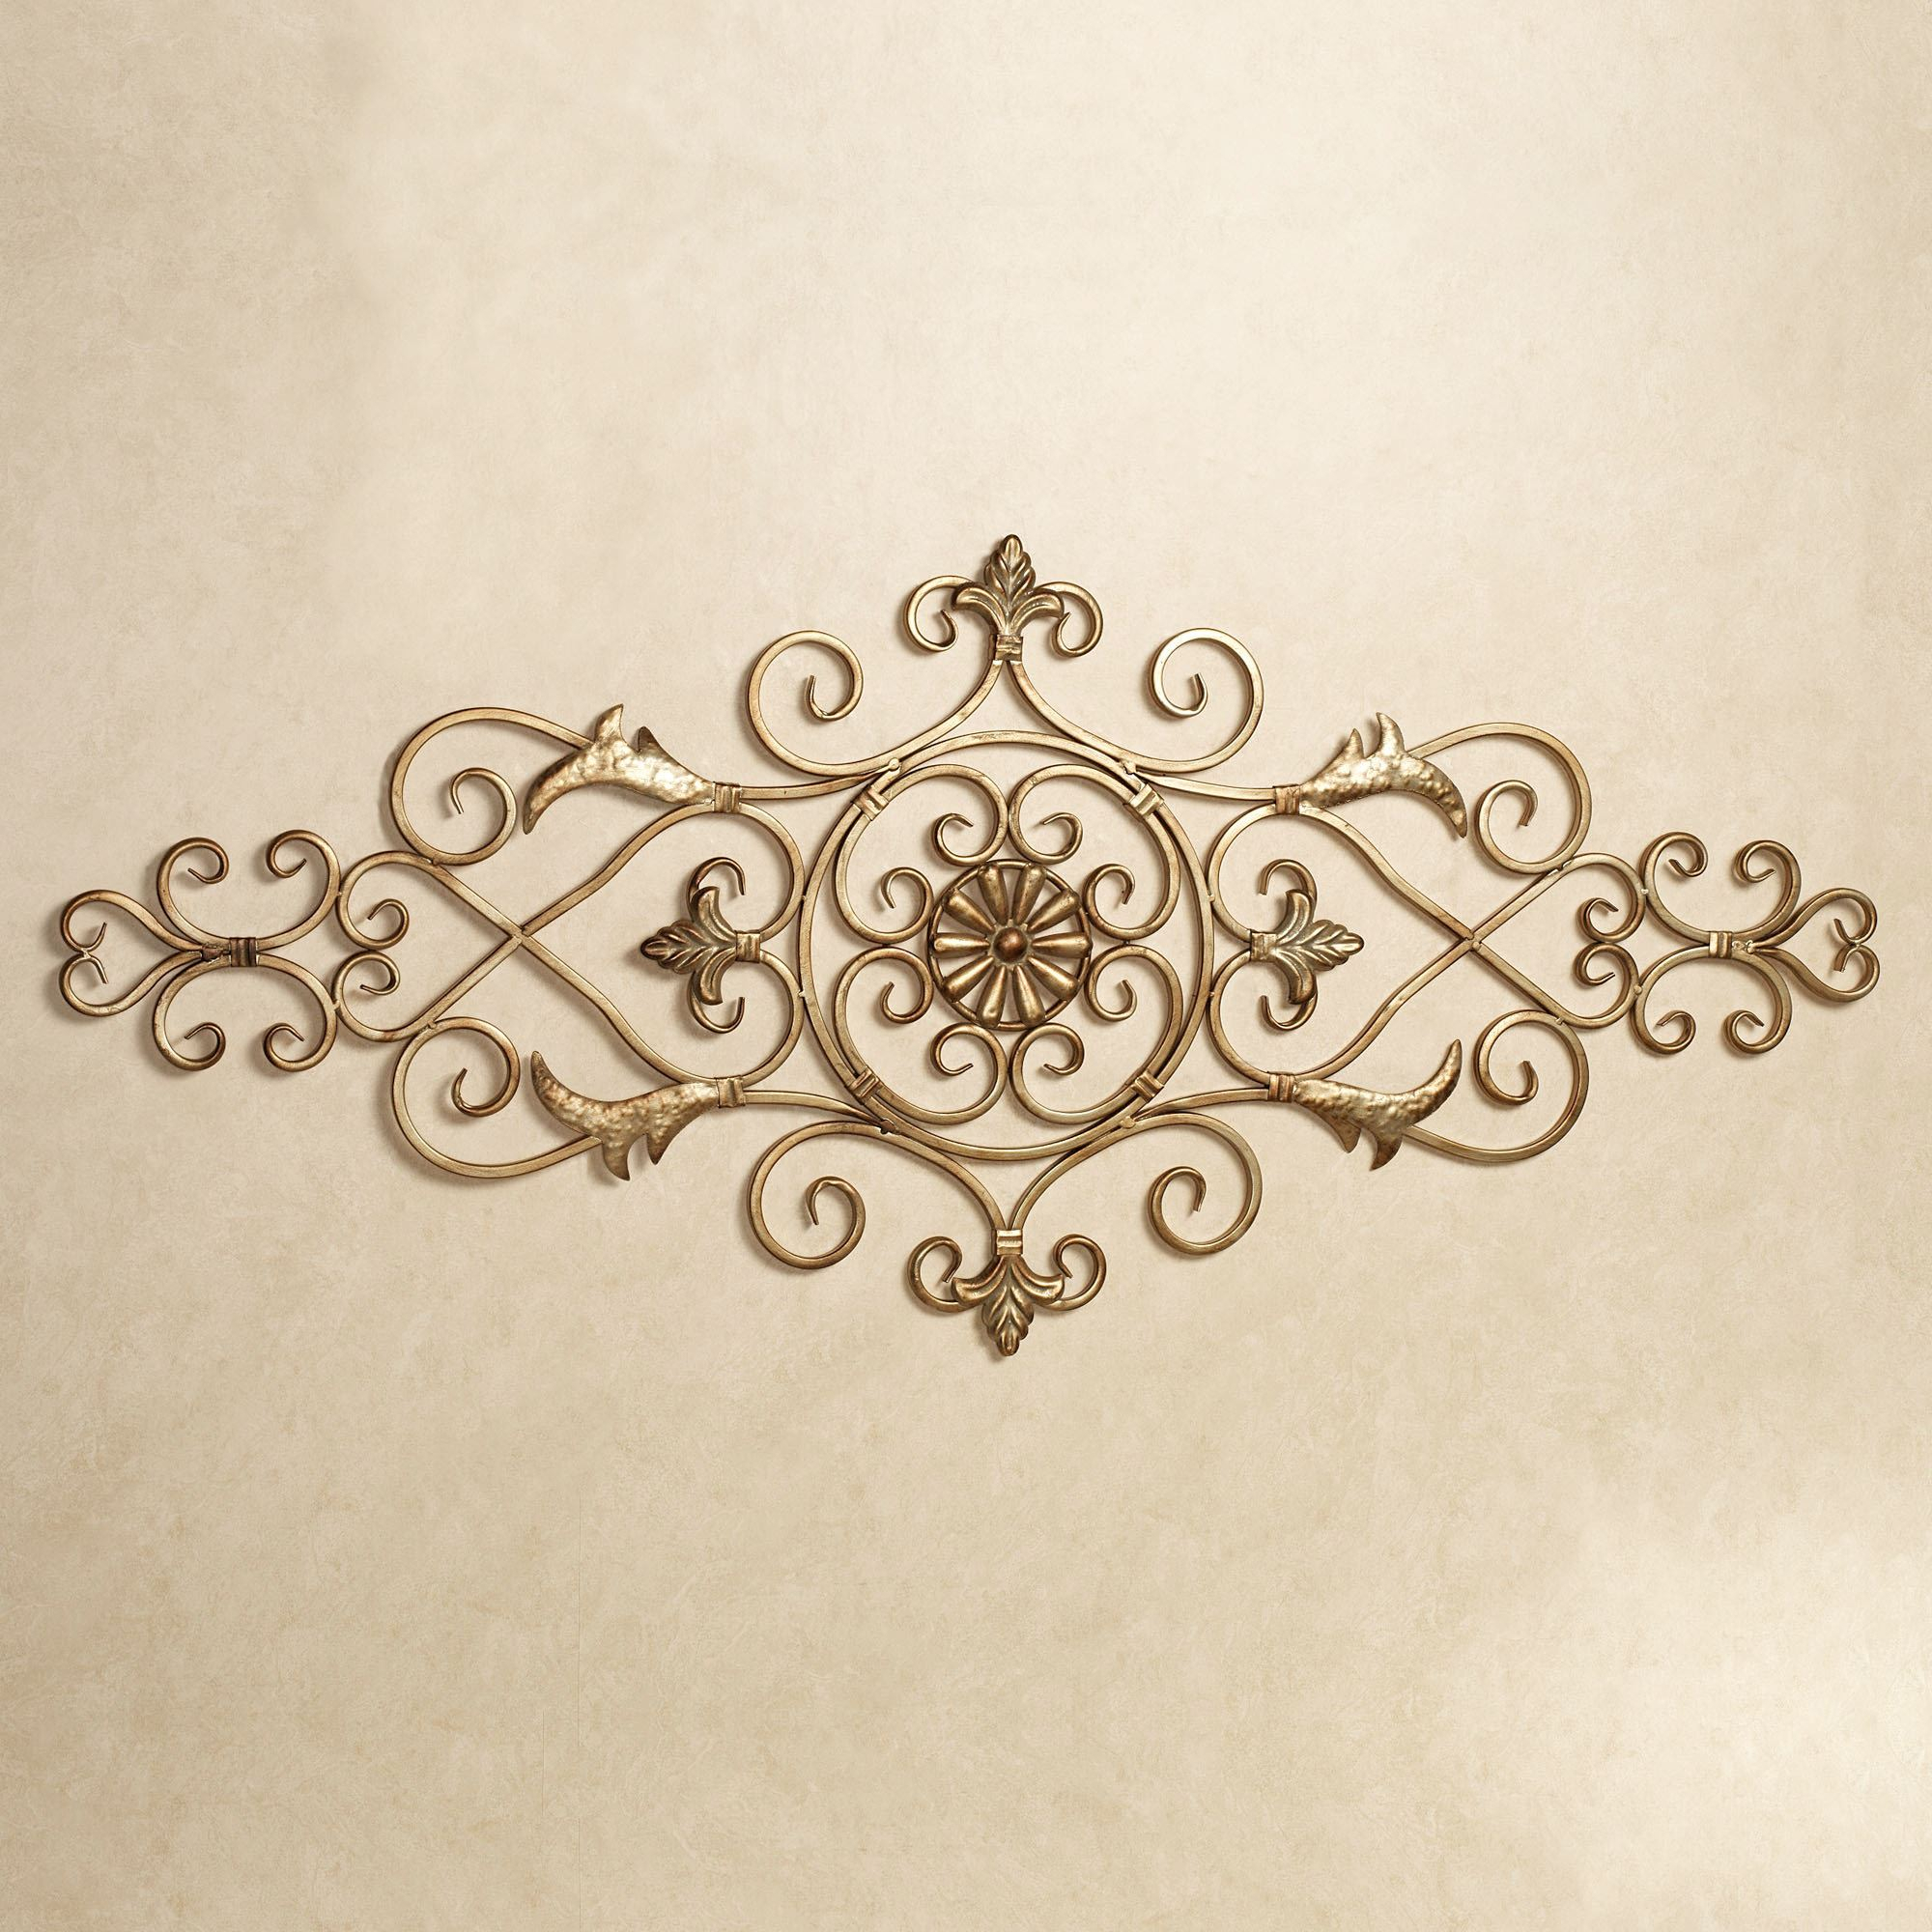 Merano Scrolling Metal Wall Grille in Ornate Scroll Wall Decor (Image 8 of 30)